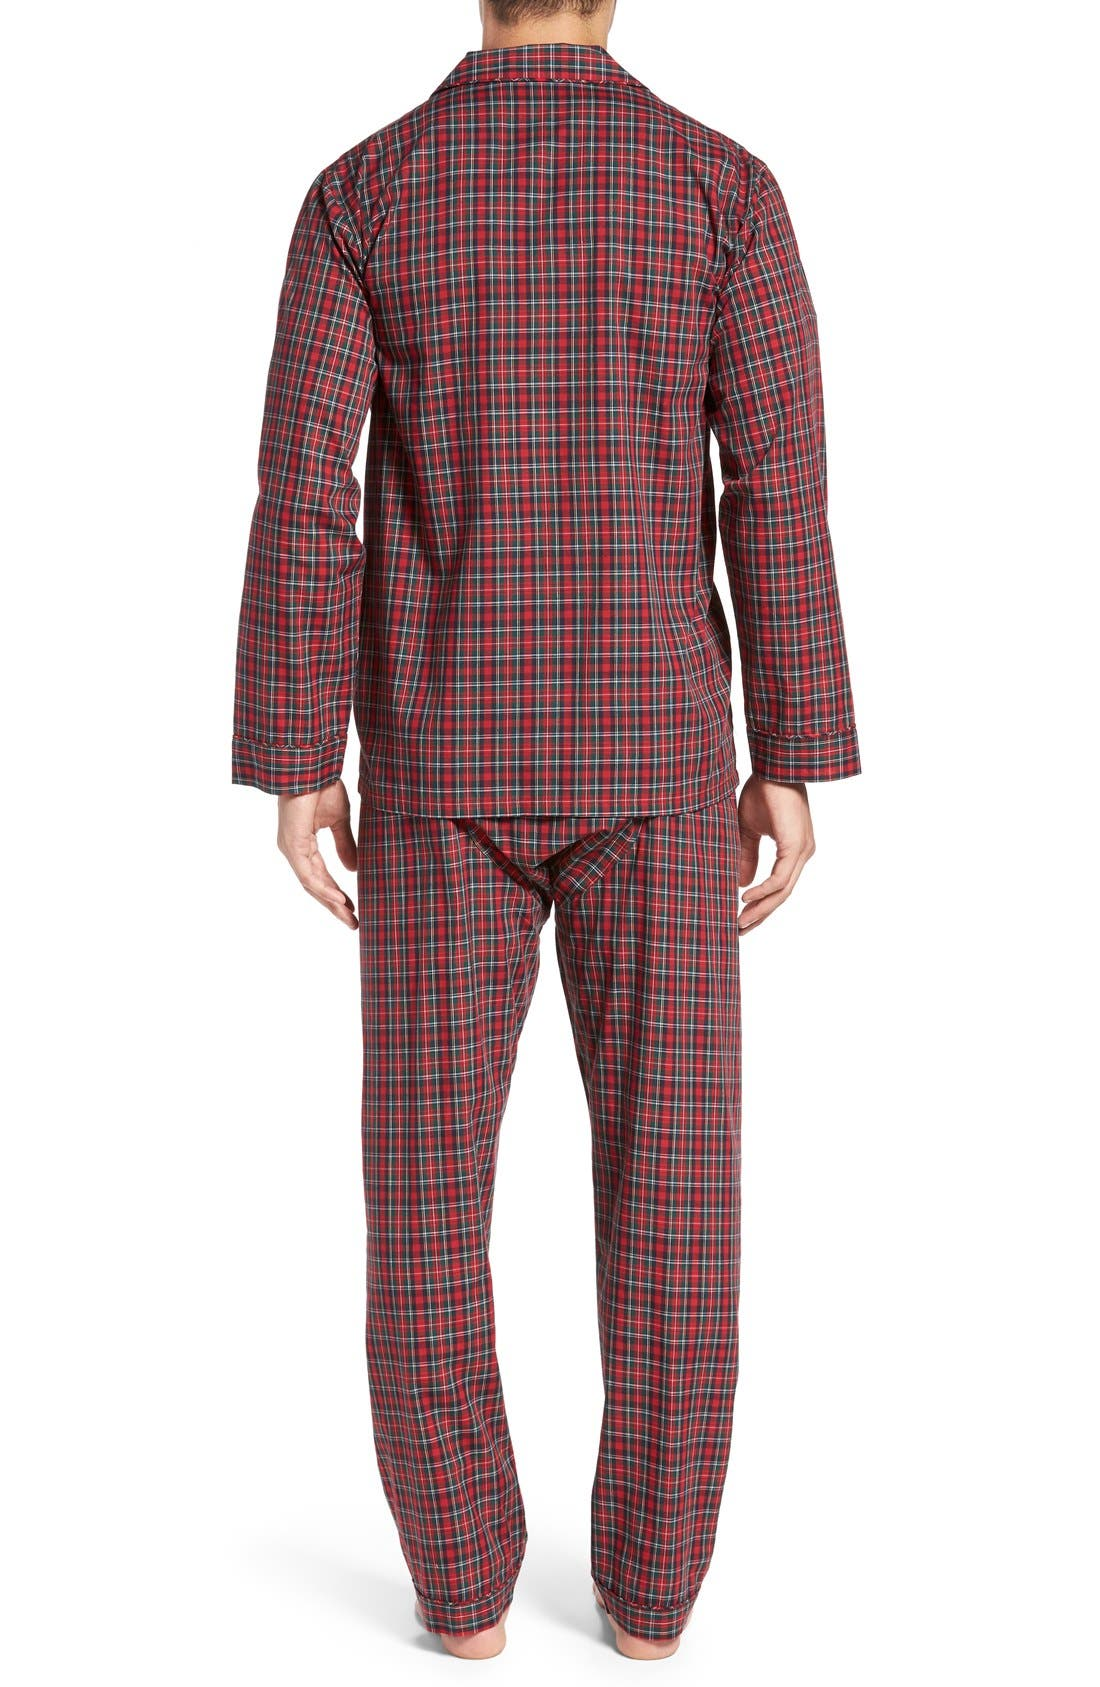 'CVC' Cotton Blend Pajamas,                             Alternate thumbnail 2, color,                             Holiday Red